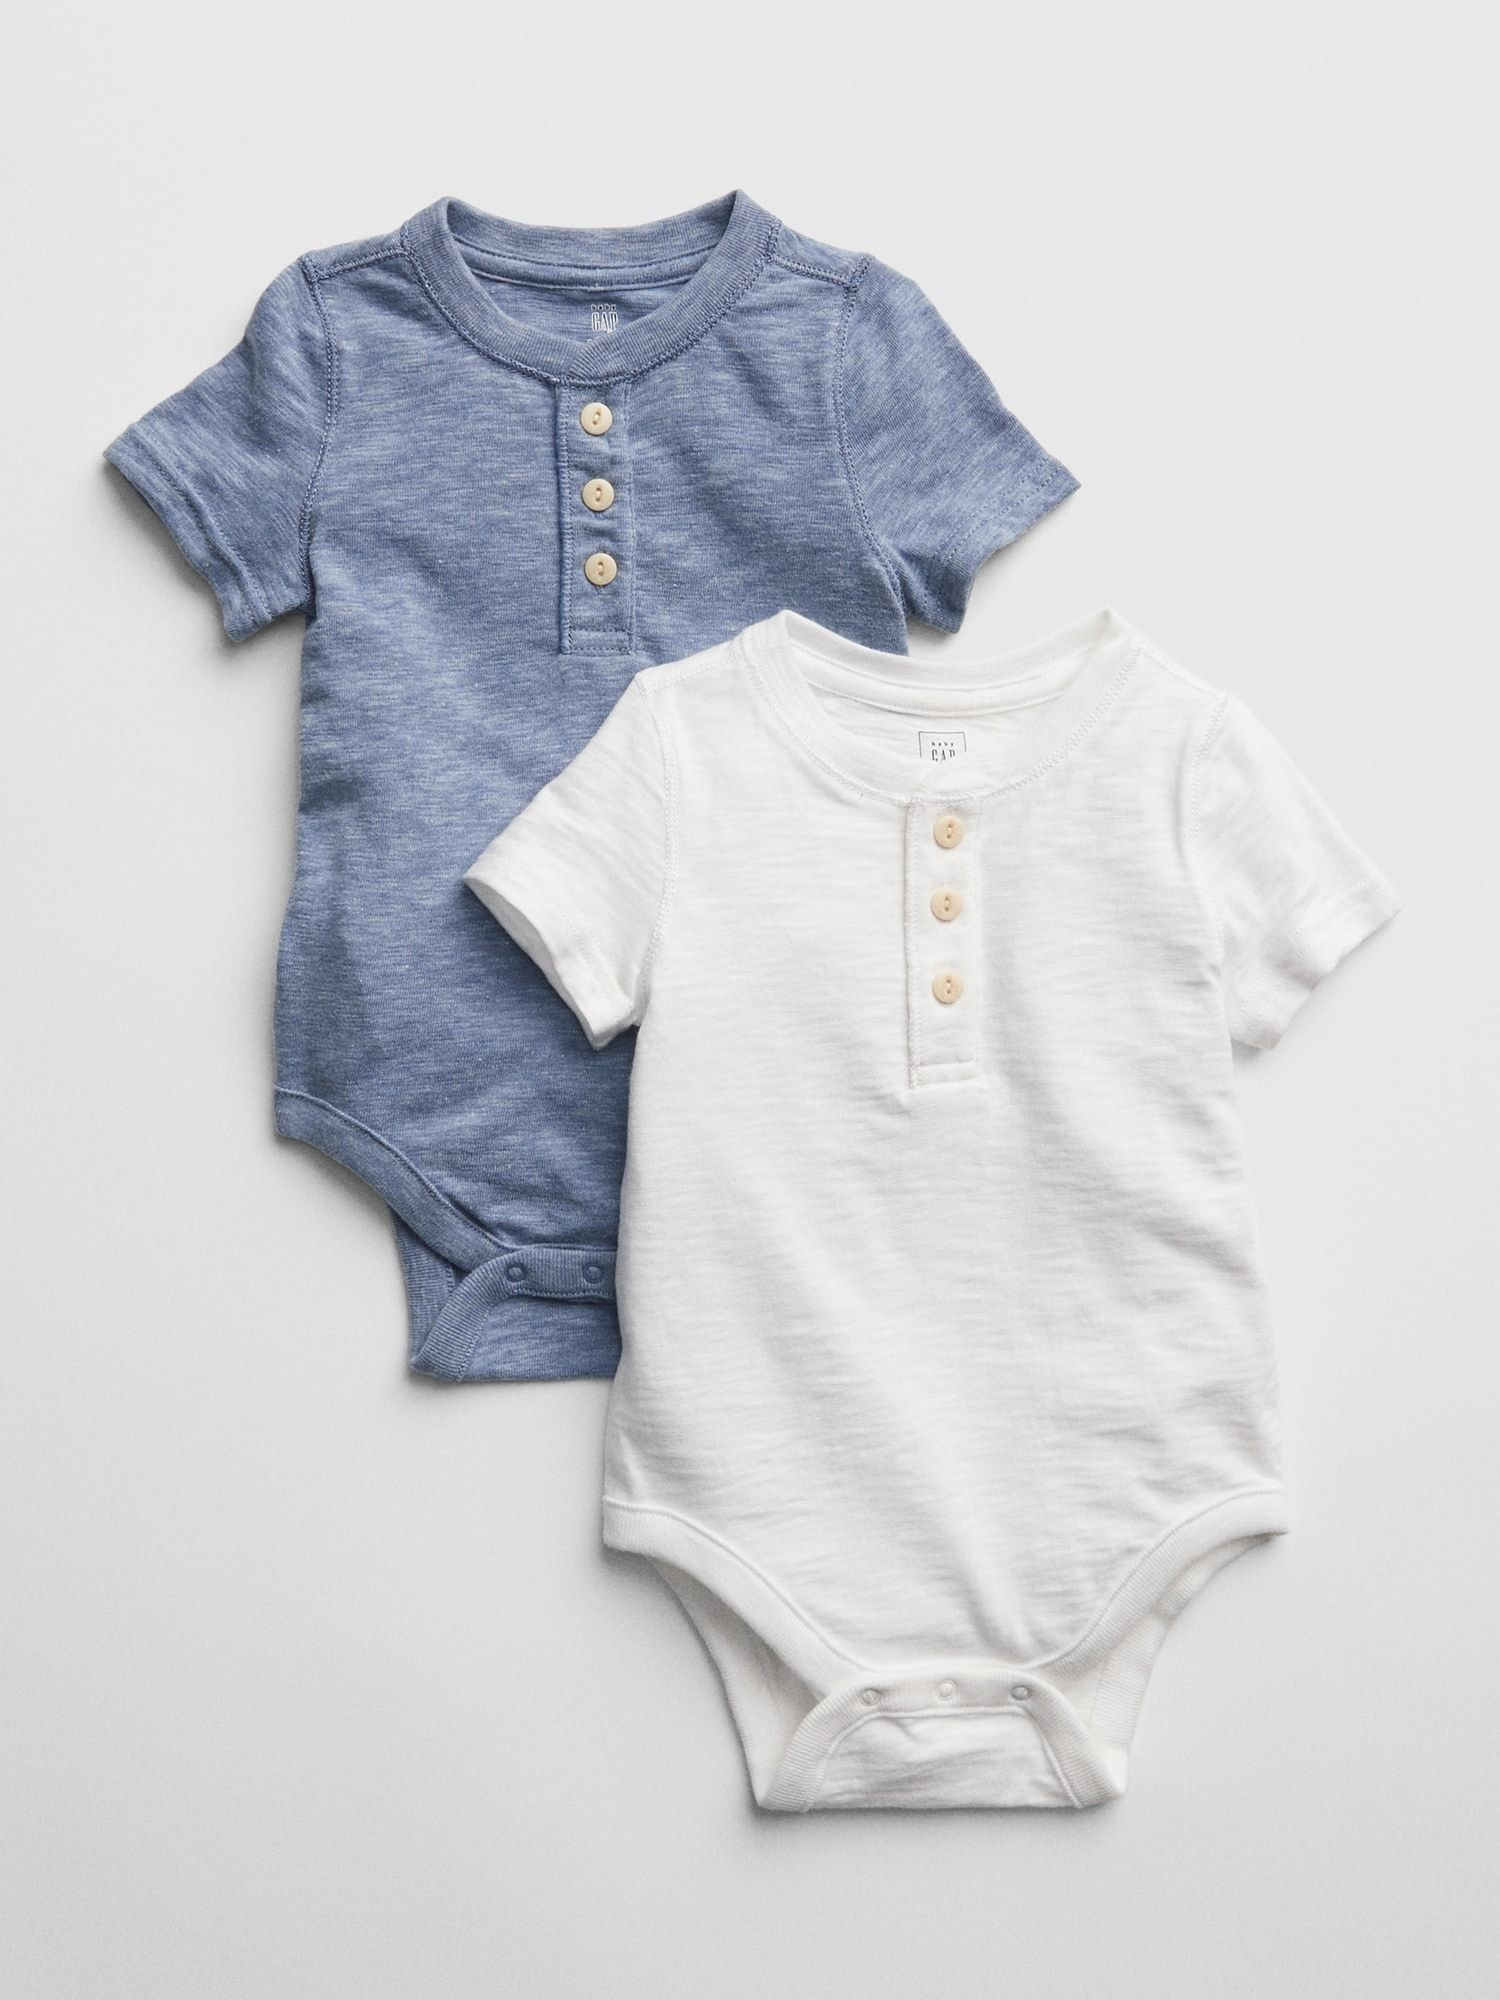 NWT Ralph Lauren Baby Boy Set Of 2 Cotton Bodysuits Heather Gray Size 3 Months